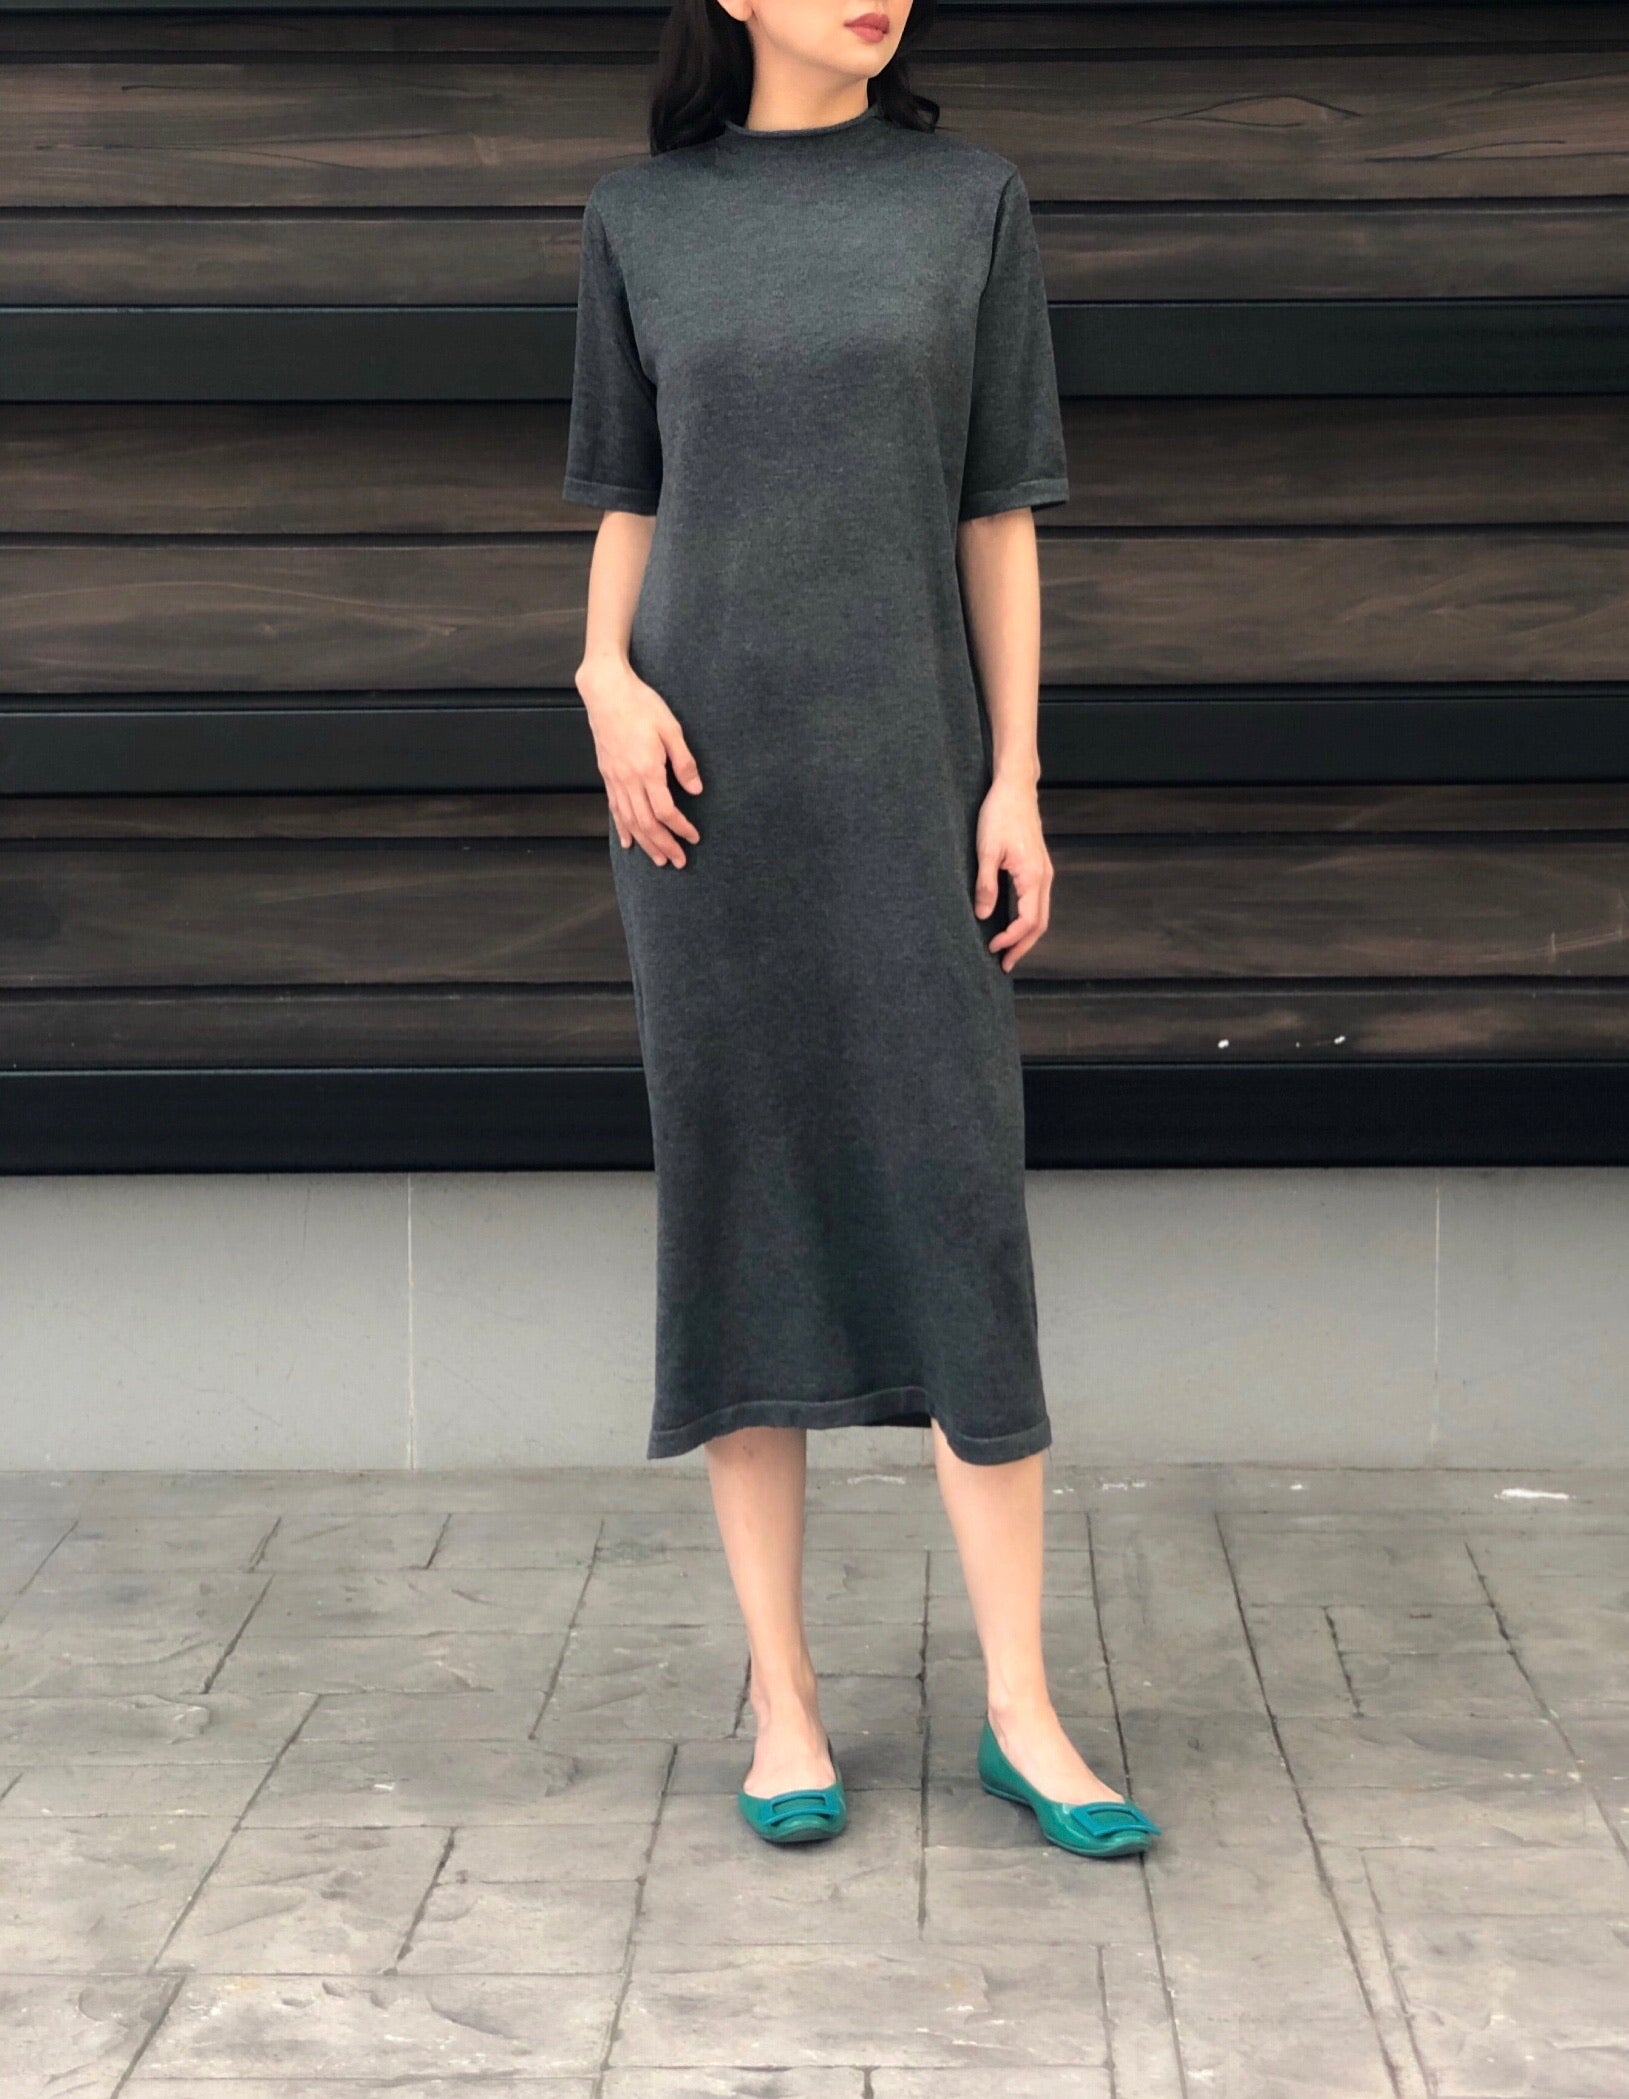 Lexi S/S Knitted Dress in Charcoal